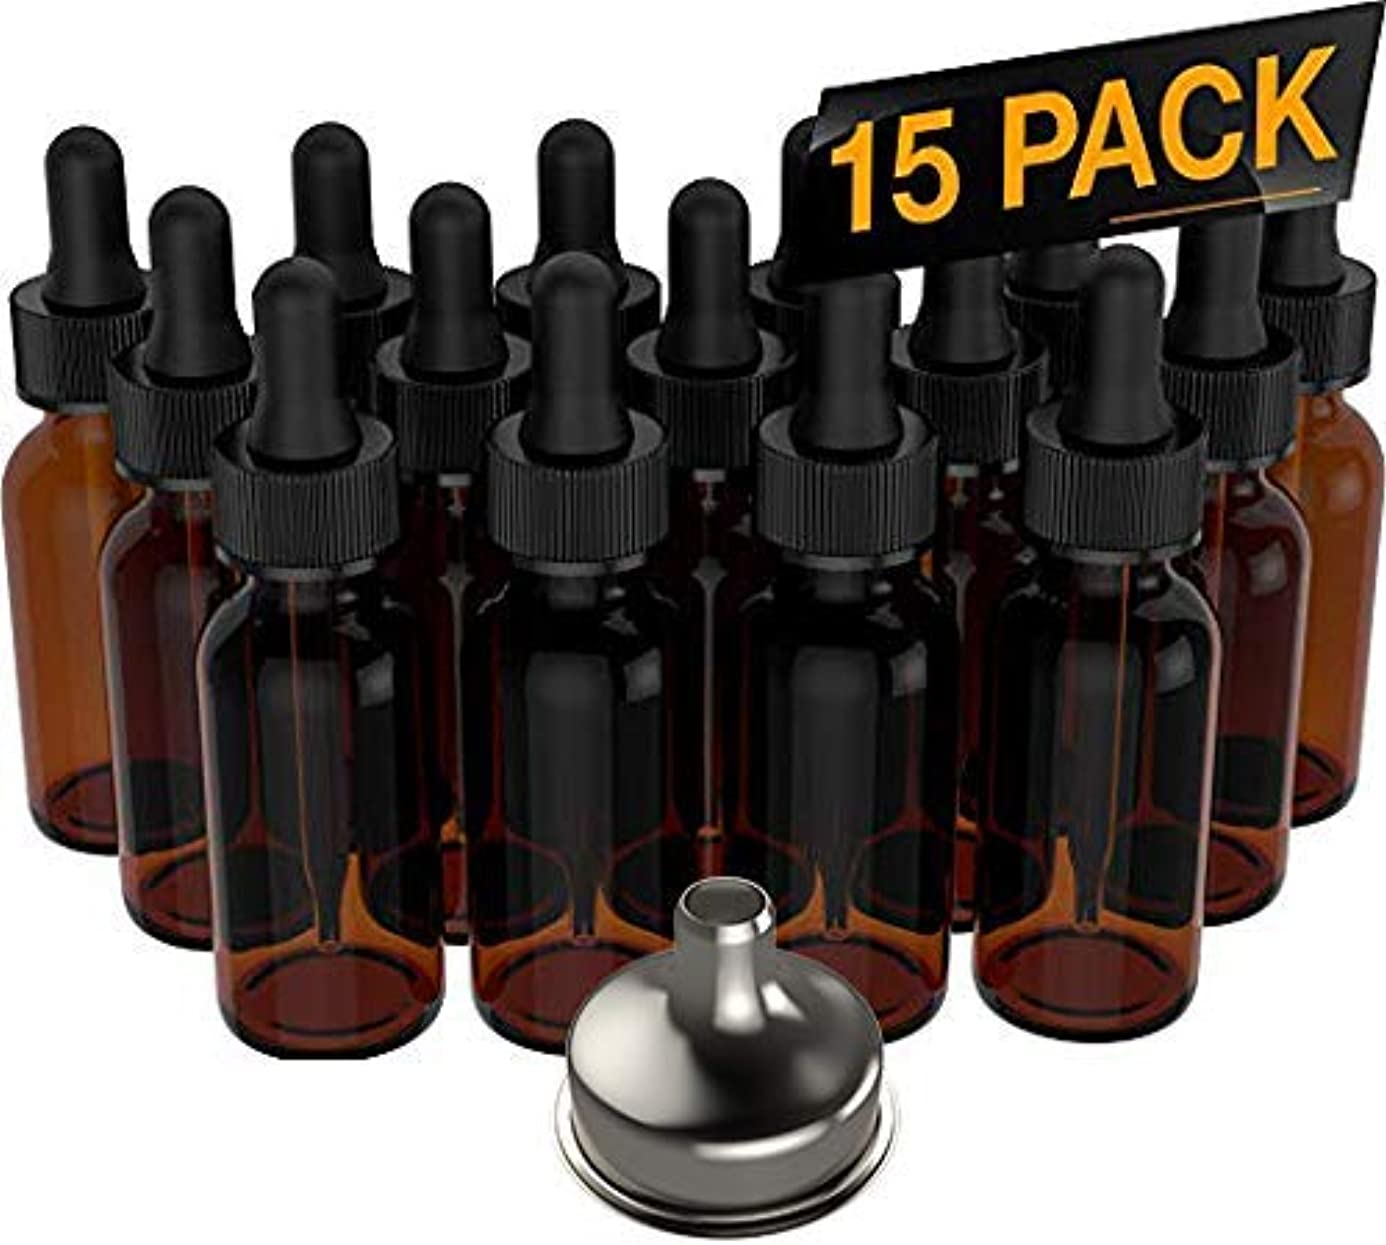 治療マーガレットミッチェルほのか15 Pack Essential Oil Bottles - Round Boston Empty Refillable Amber Bottle with Glass Dropper [ Free Stainless...